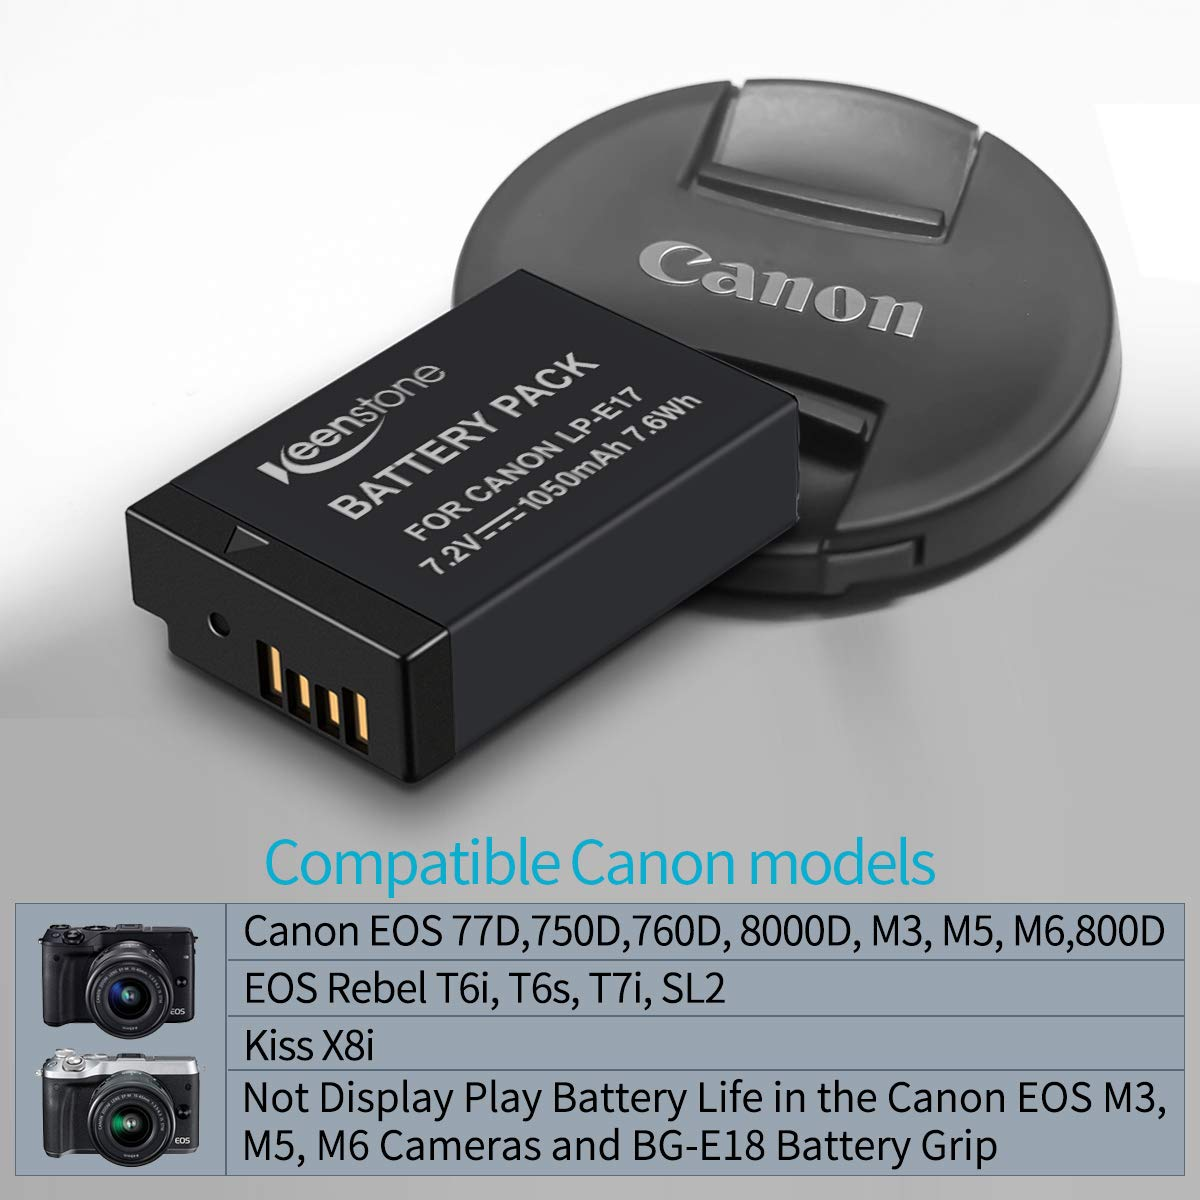 For Canon LP-E17 Battery,Keenstone 2-Pack 1050mAh 7.2V Camera Batteries with Charger for Canon EOS M3 M5 M6 200D 77D 650D 750D 760D 800D Kiss X8i Rebel T6i T6s (Air Blower Included)